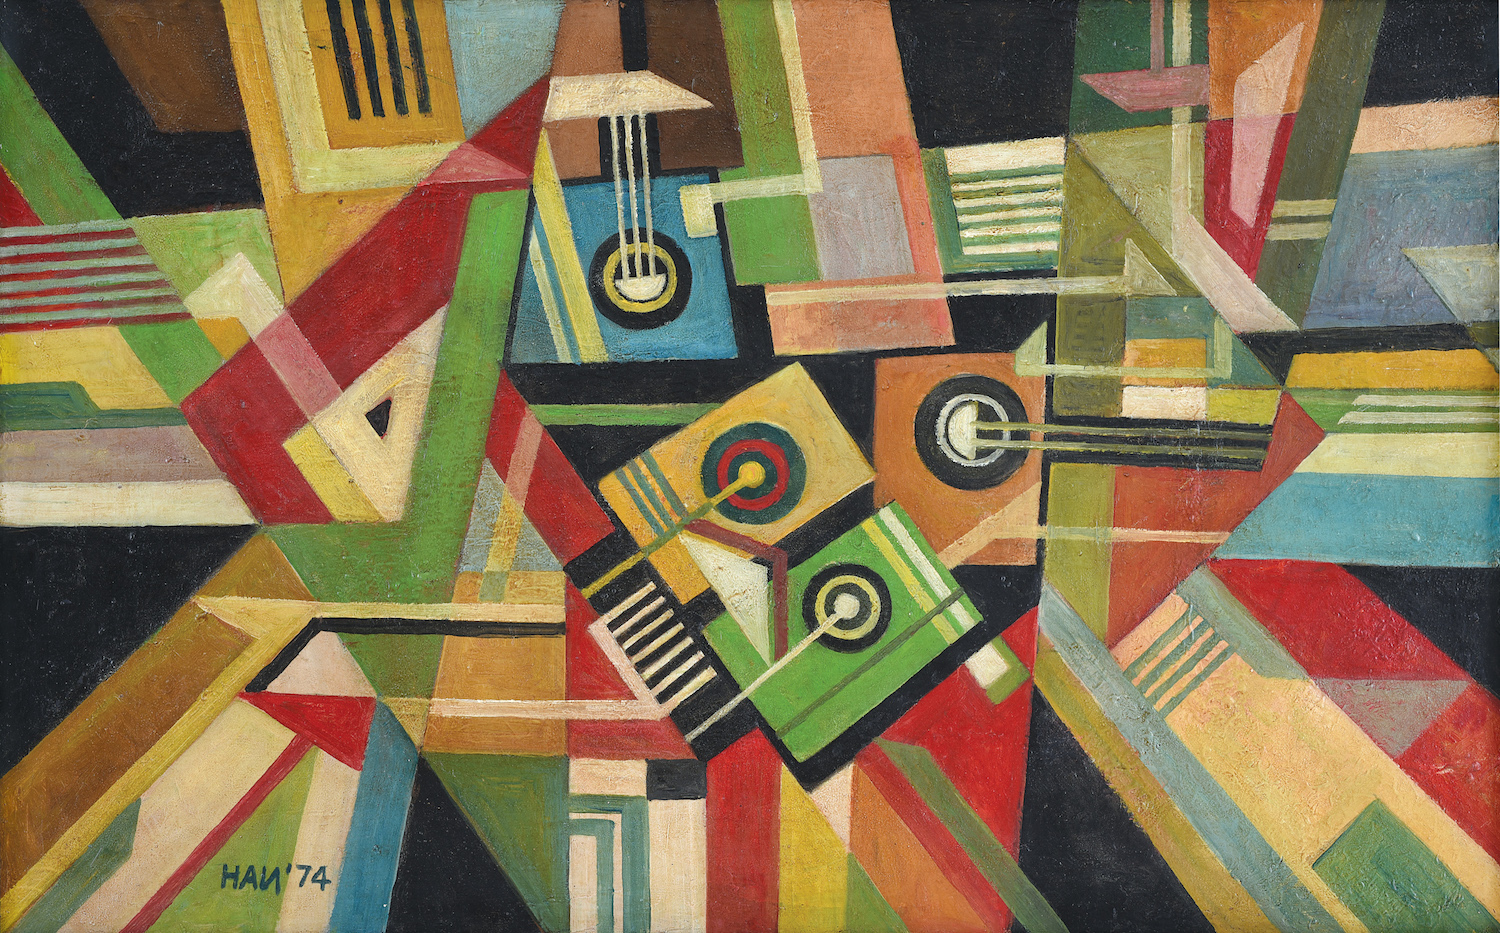 Handrio, 'Abstraction in Space', 1974, oil on canvas, 53 x 85cm. Image courtesy of Asia Art Center.